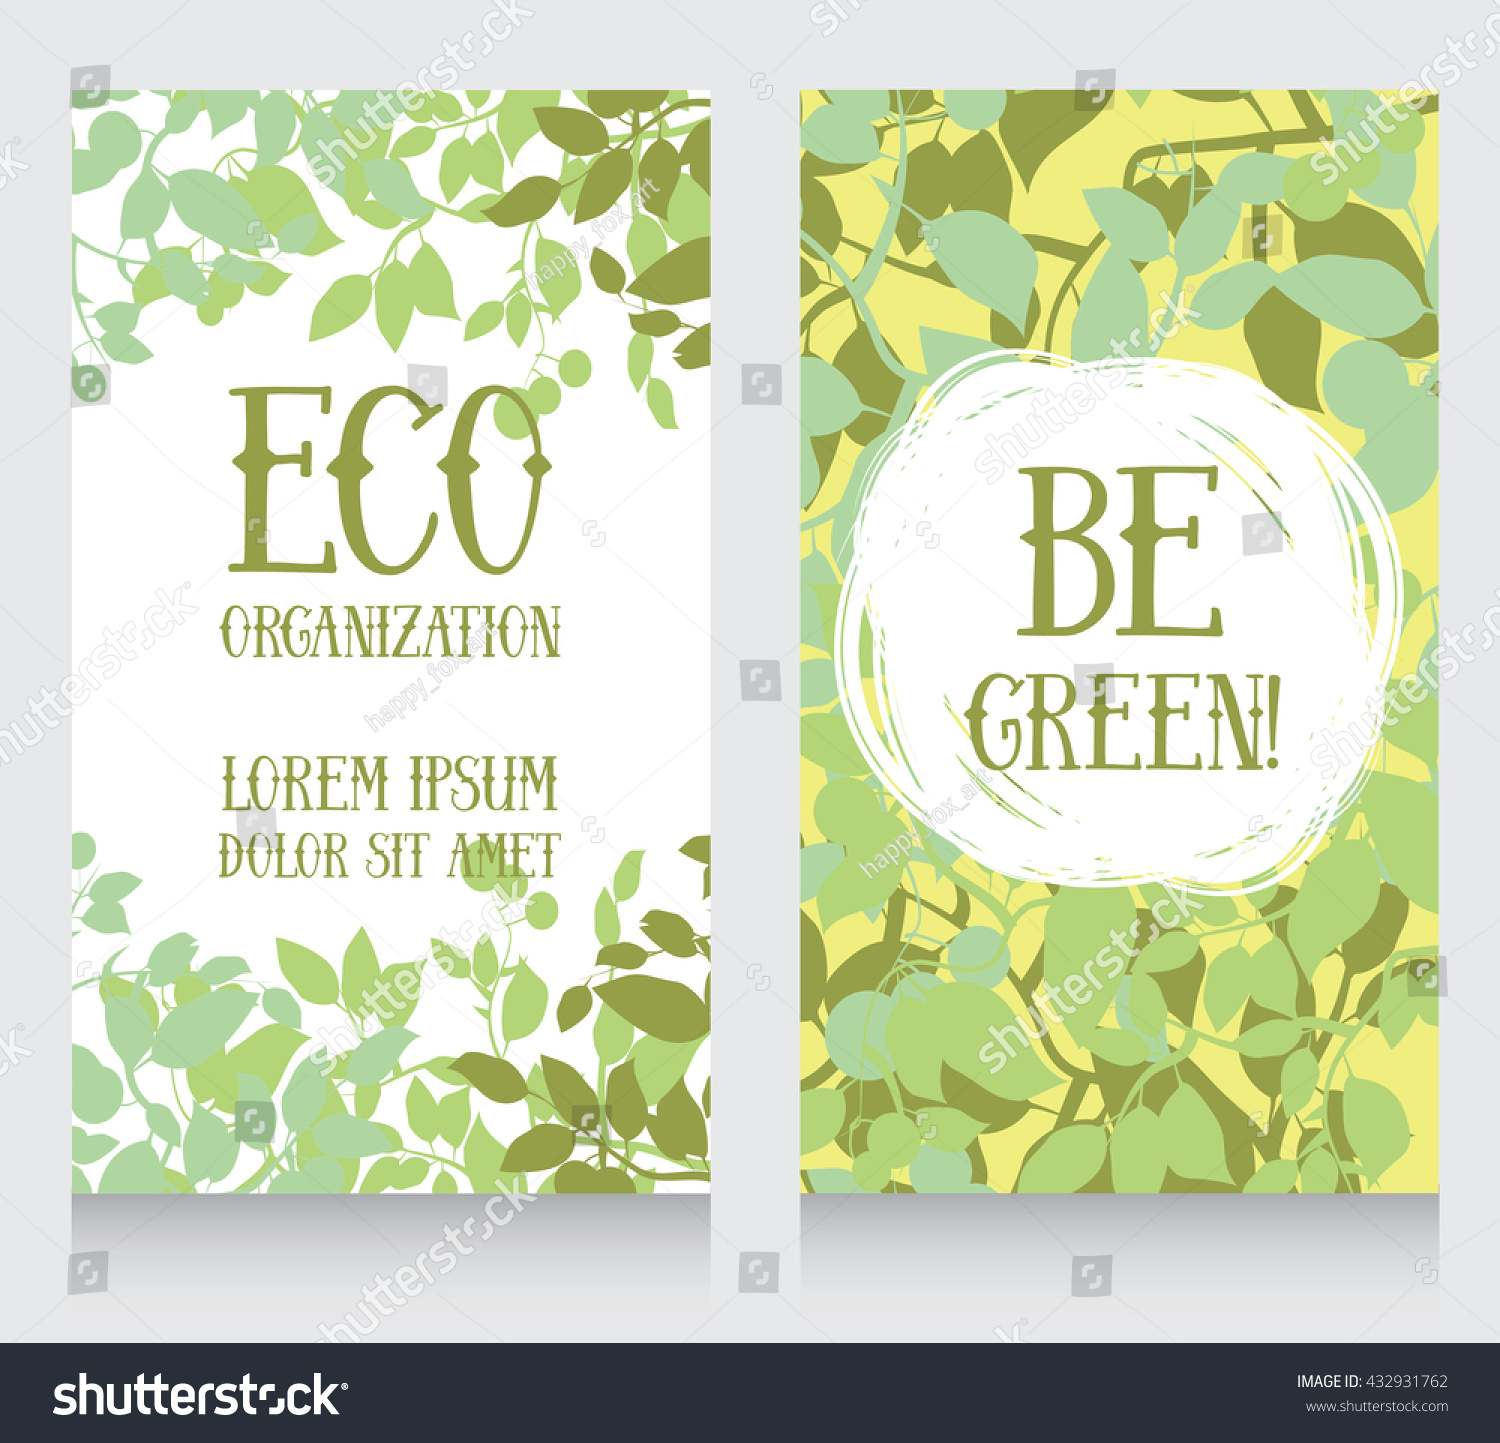 Business Card Template Leaves Decor Ecology Stock Vector (2018 ...